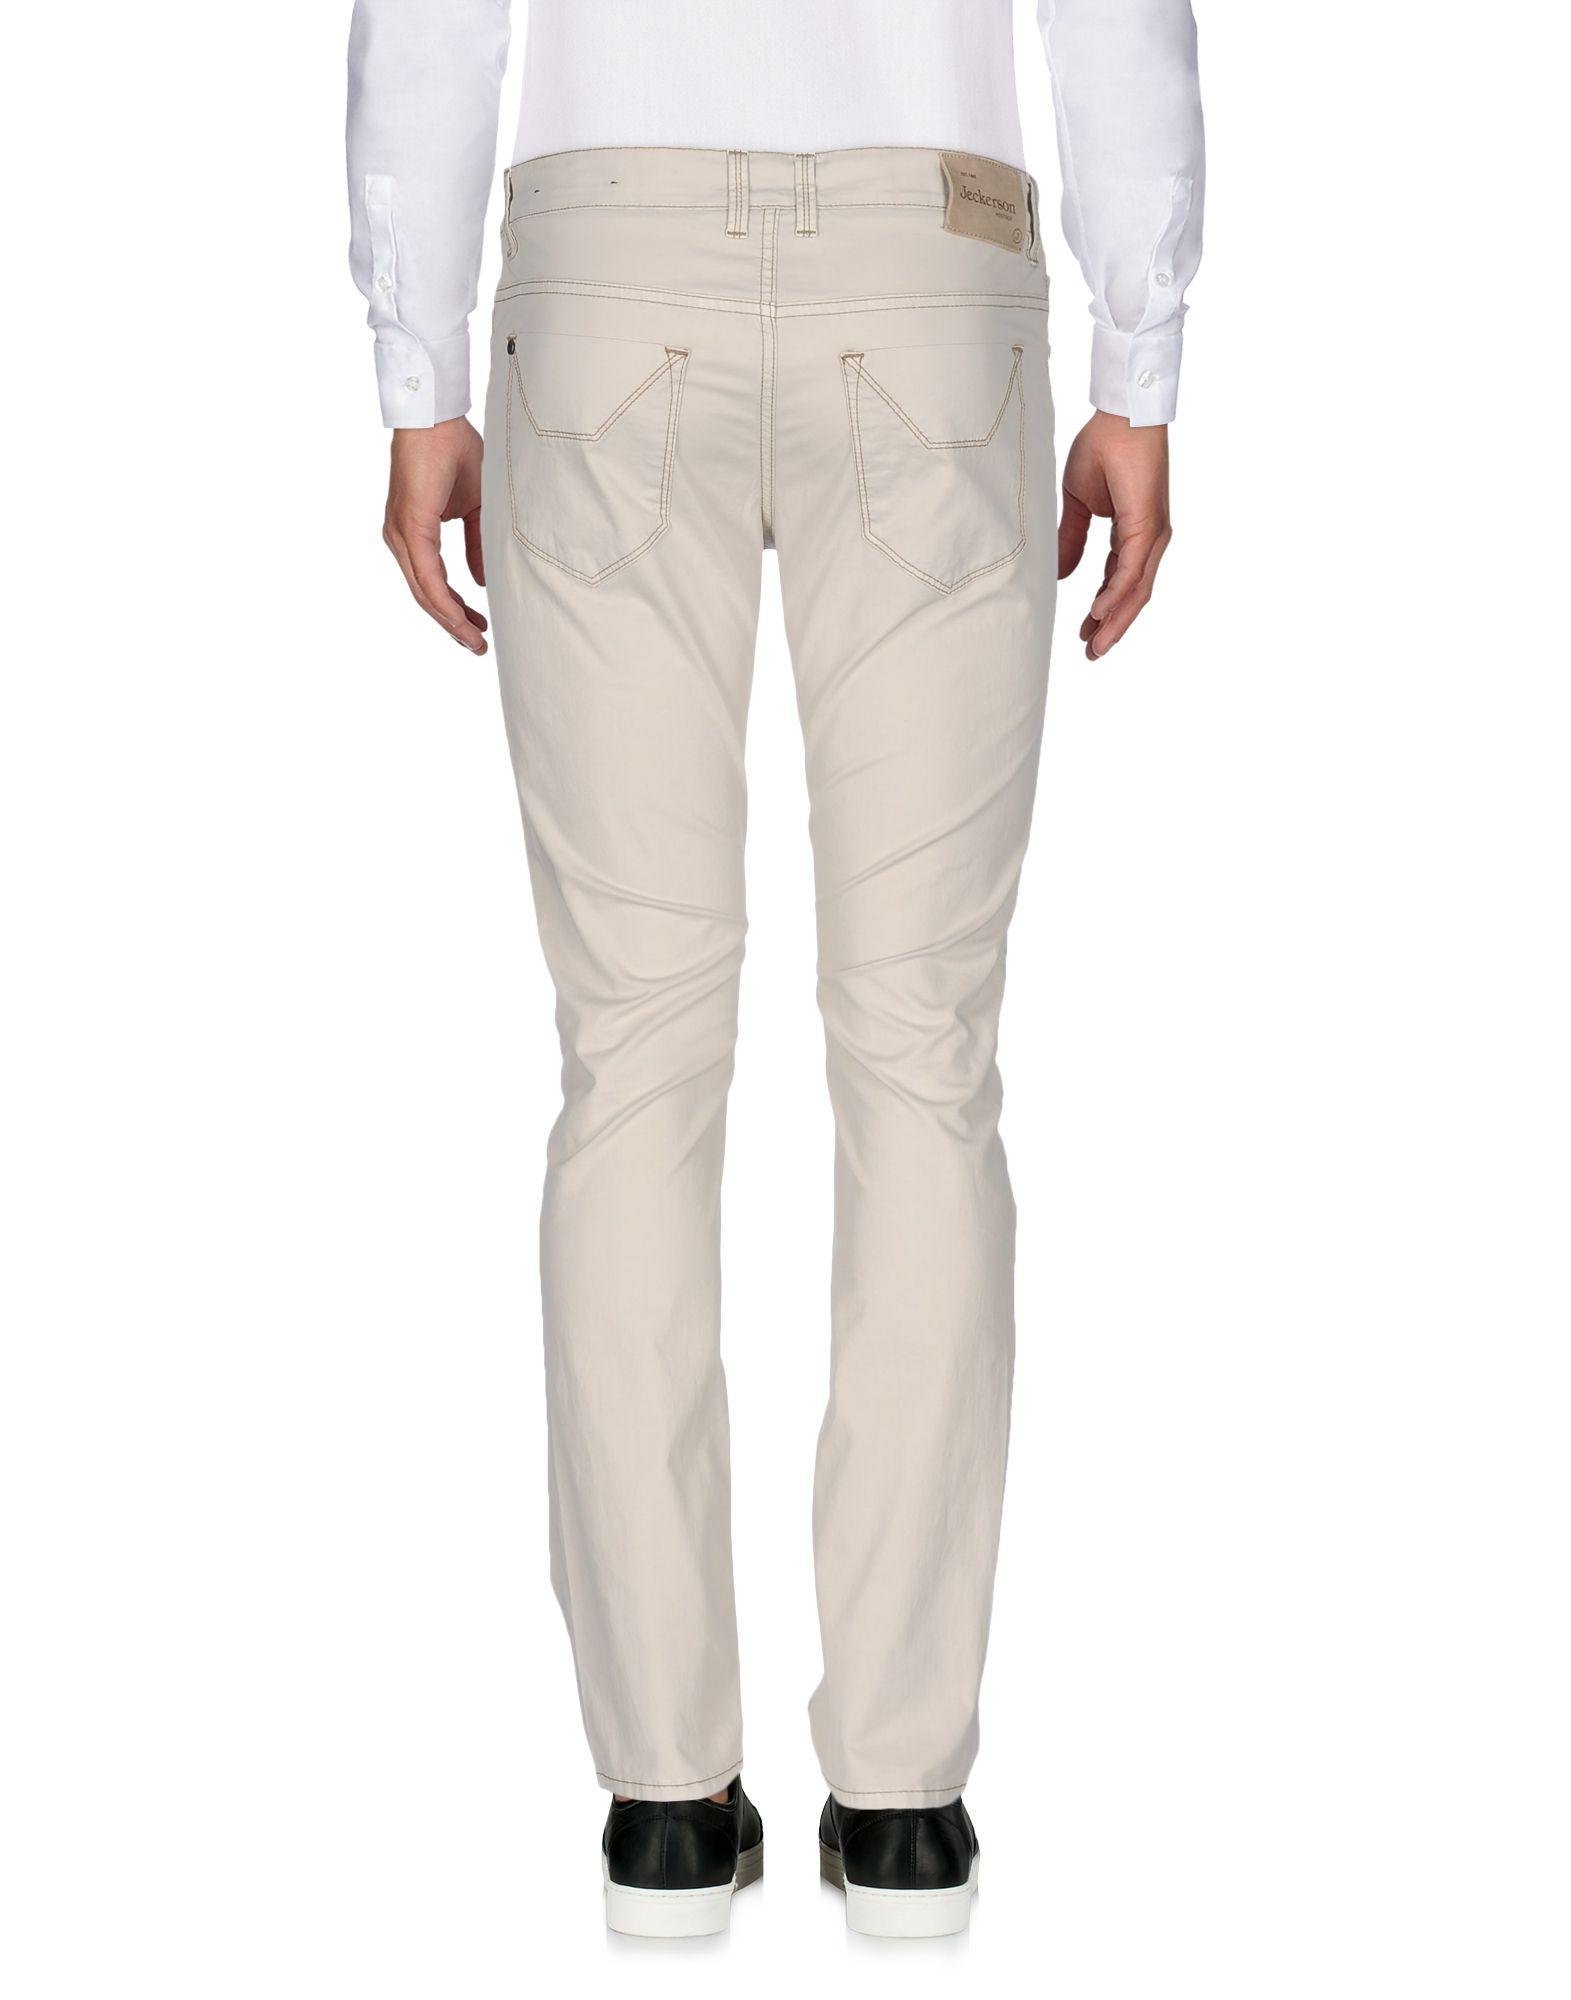 Jeckerson Leather Casual Trouser in Light Grey (Grey) for Men